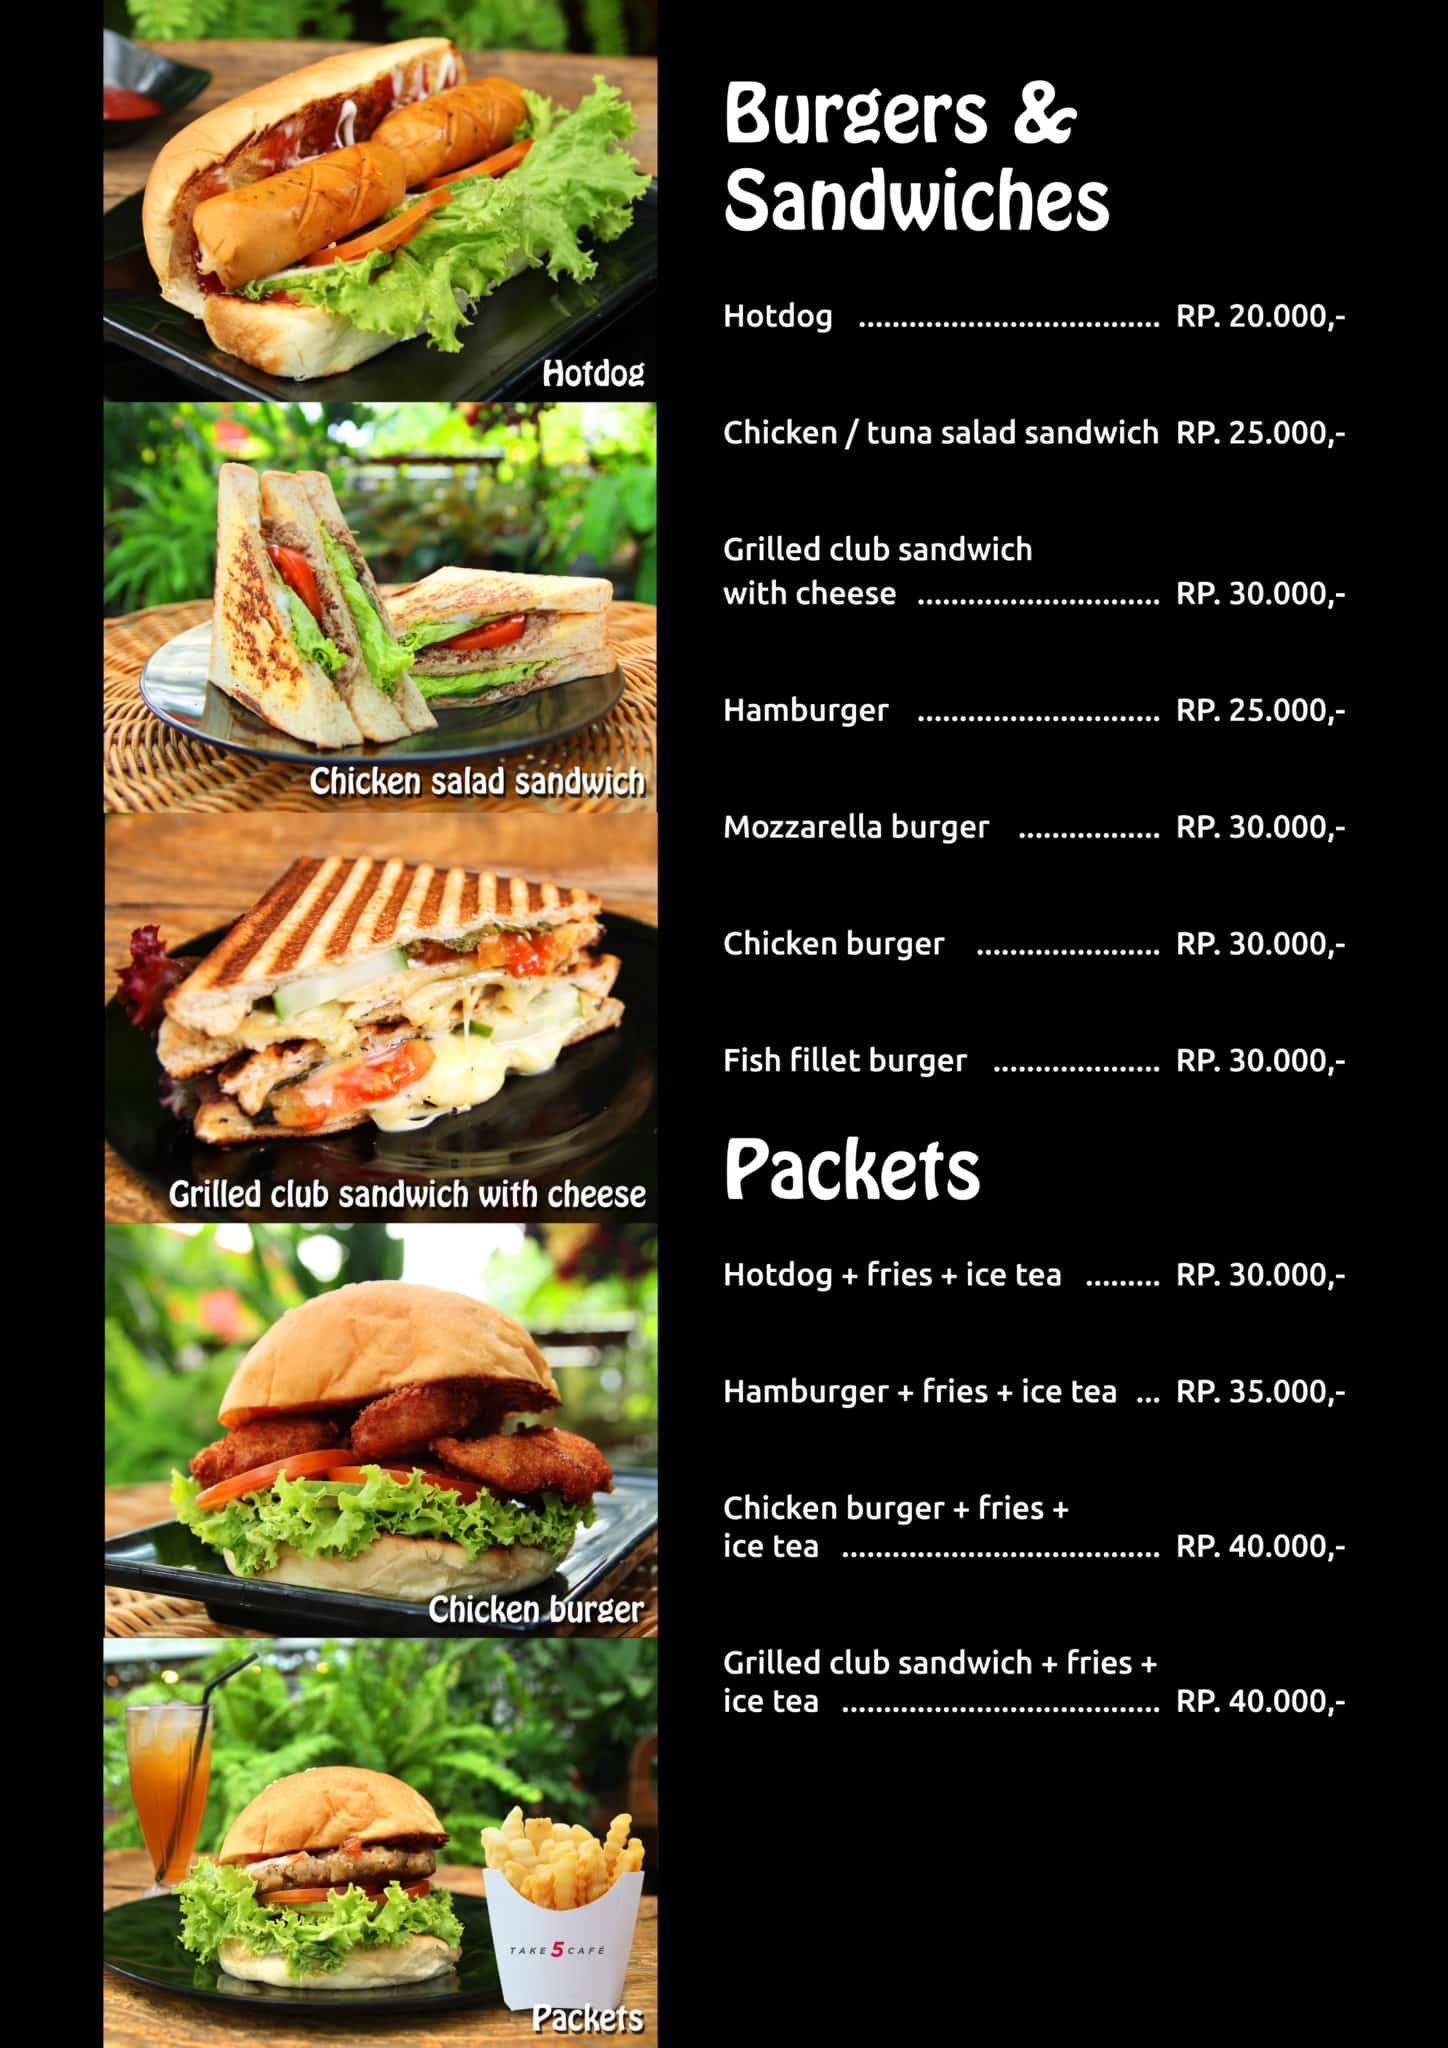 Take 5 Cafe Burgers and Sandwiches Menu